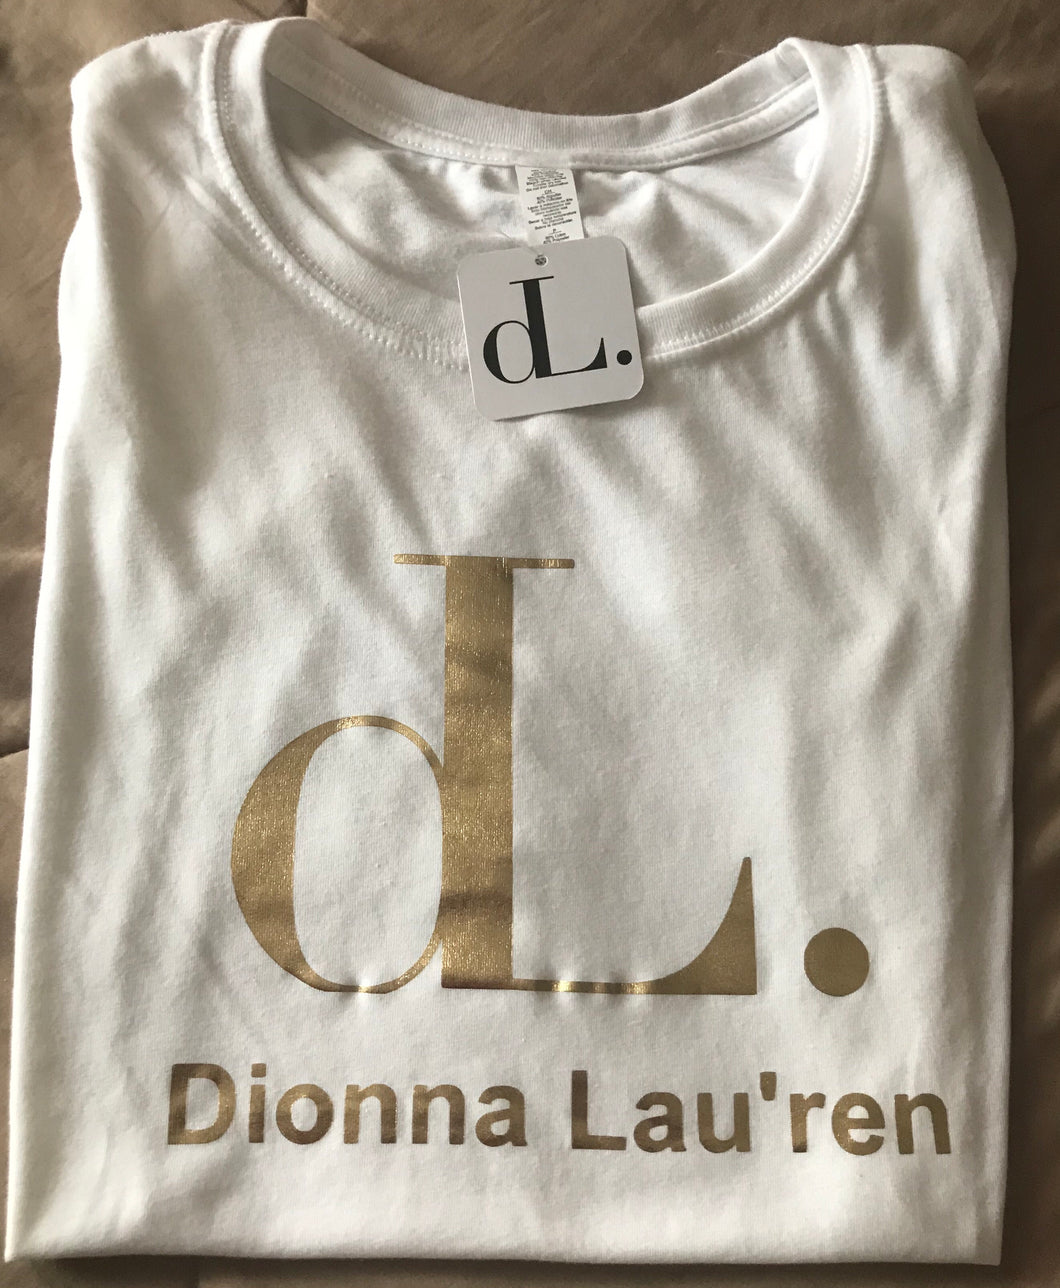 DL Fashions Limited Edition Tshirt Gold